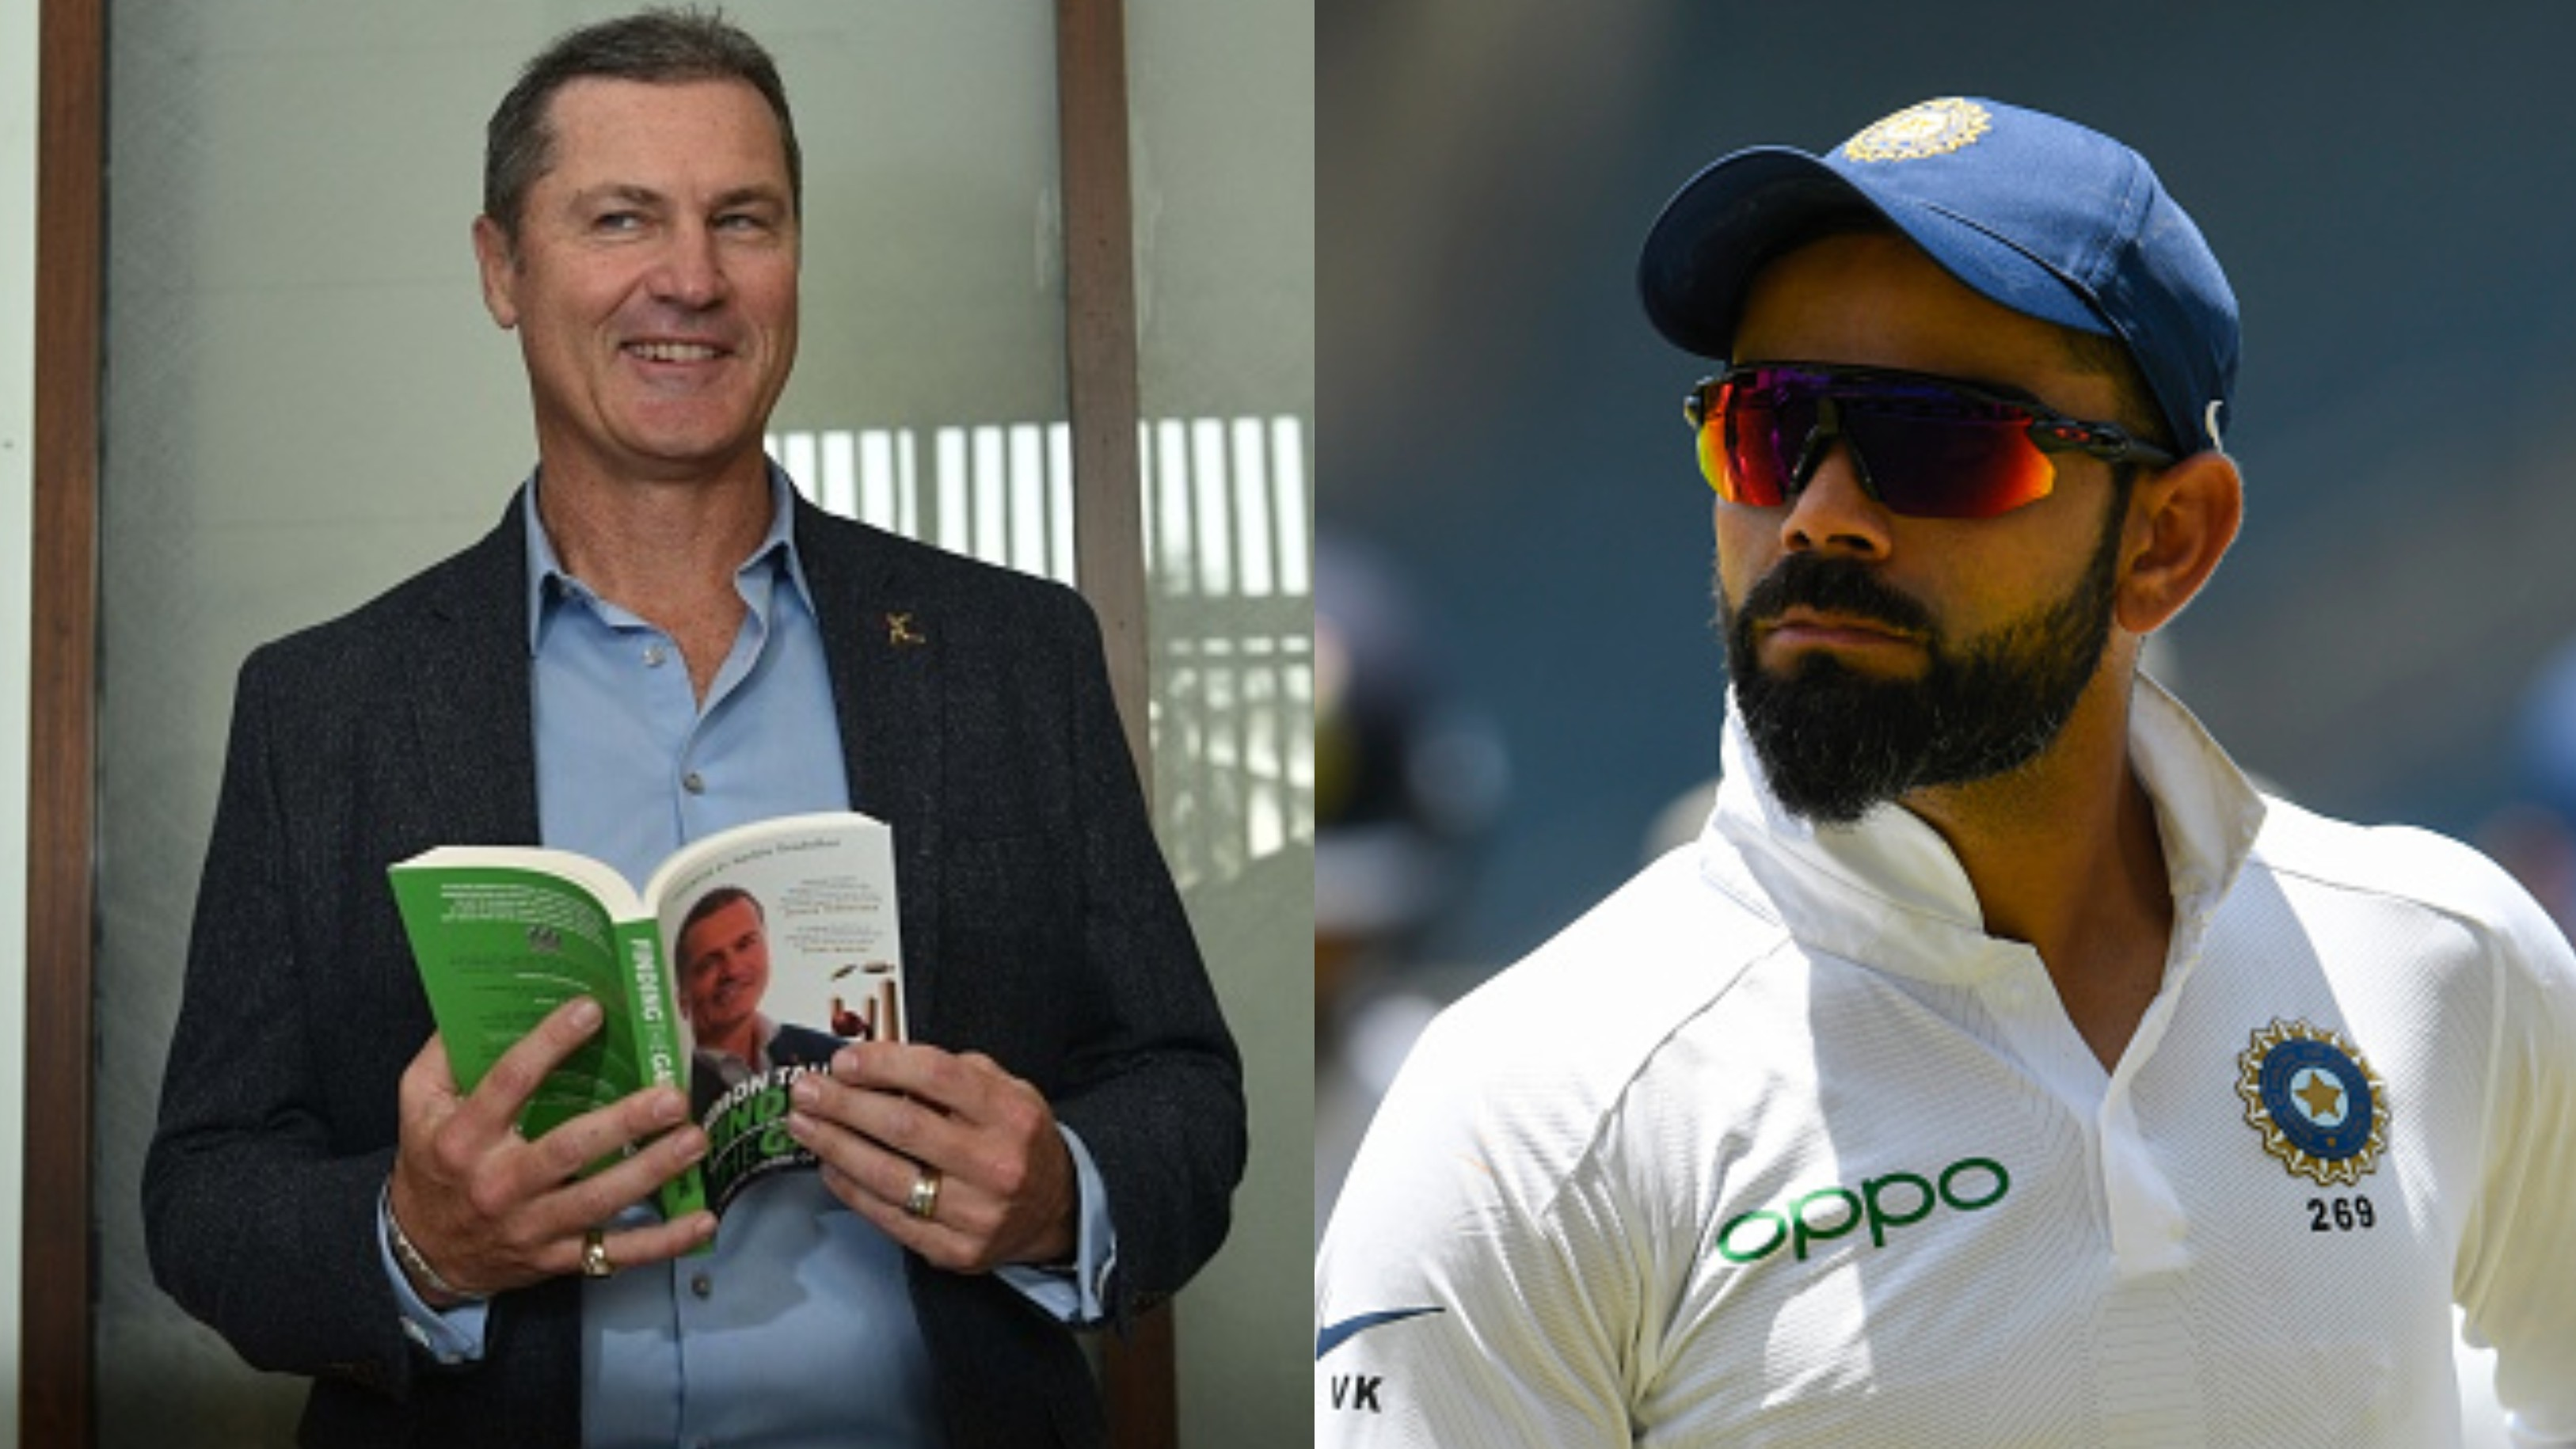 Simon Taufel feels Virat Kohli is prone to getting emotionally hijacked given his aggressive attitude